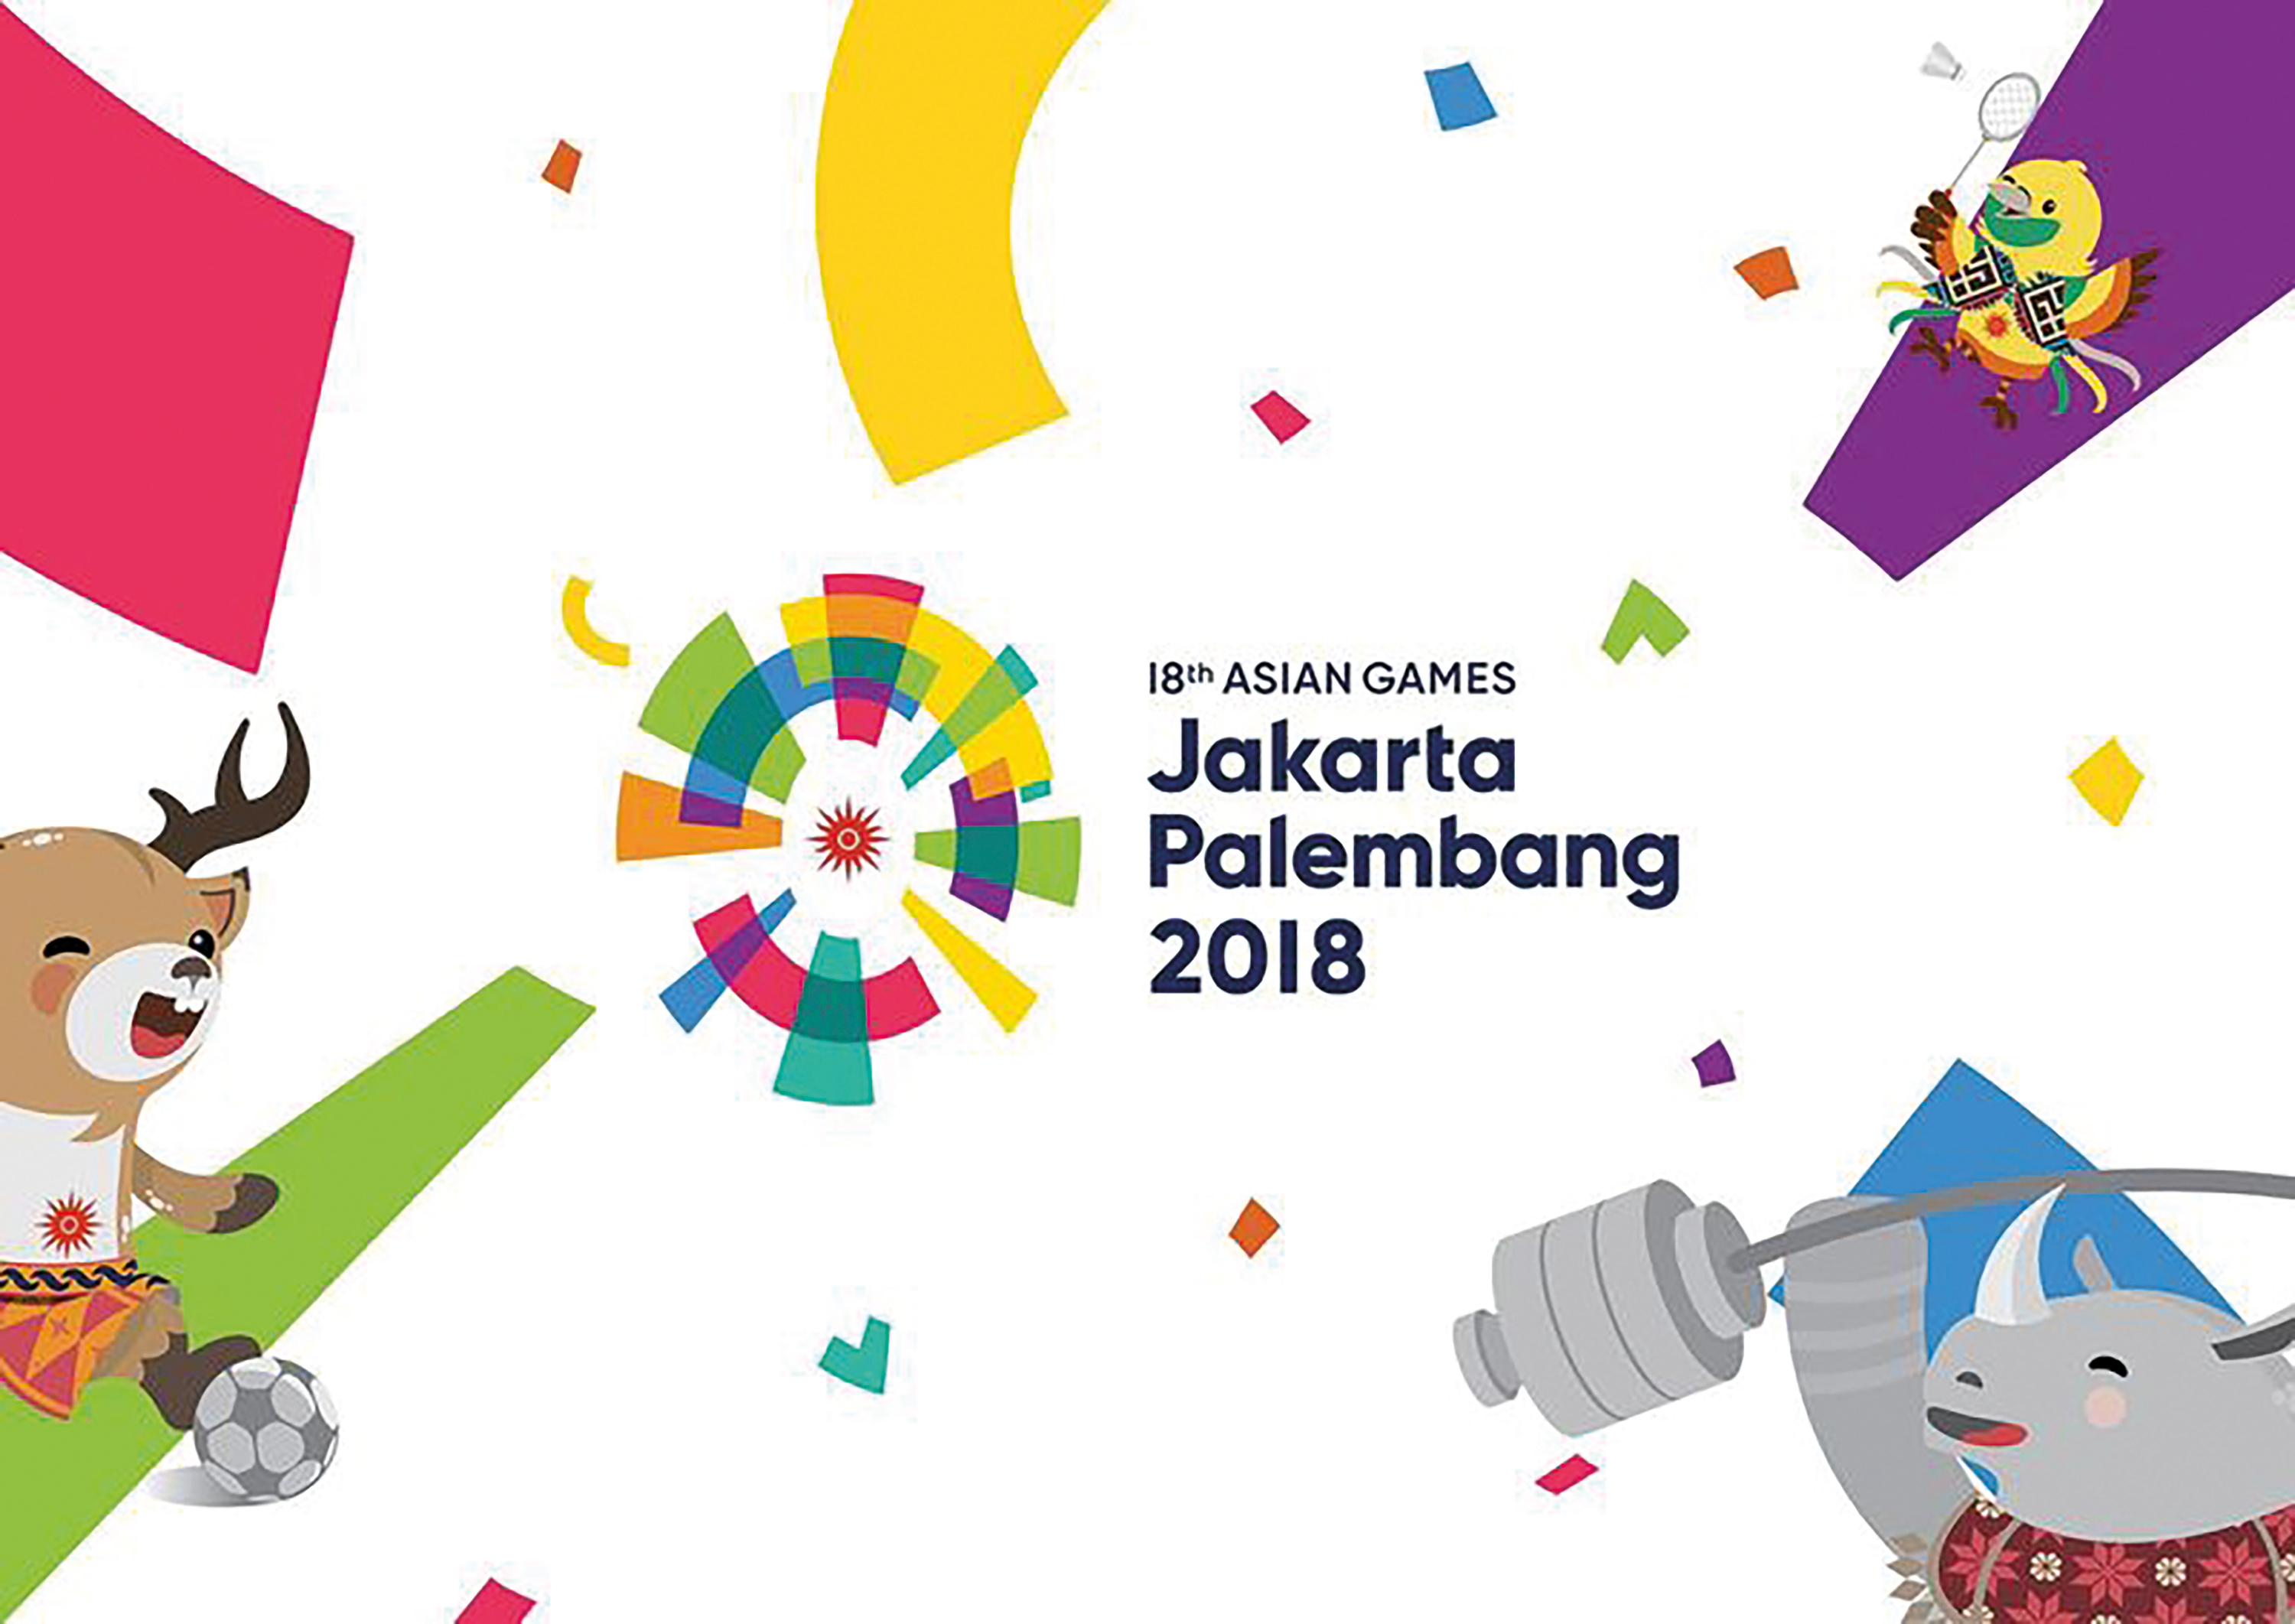 asian games 2018 - Asian Games 2018 Events List